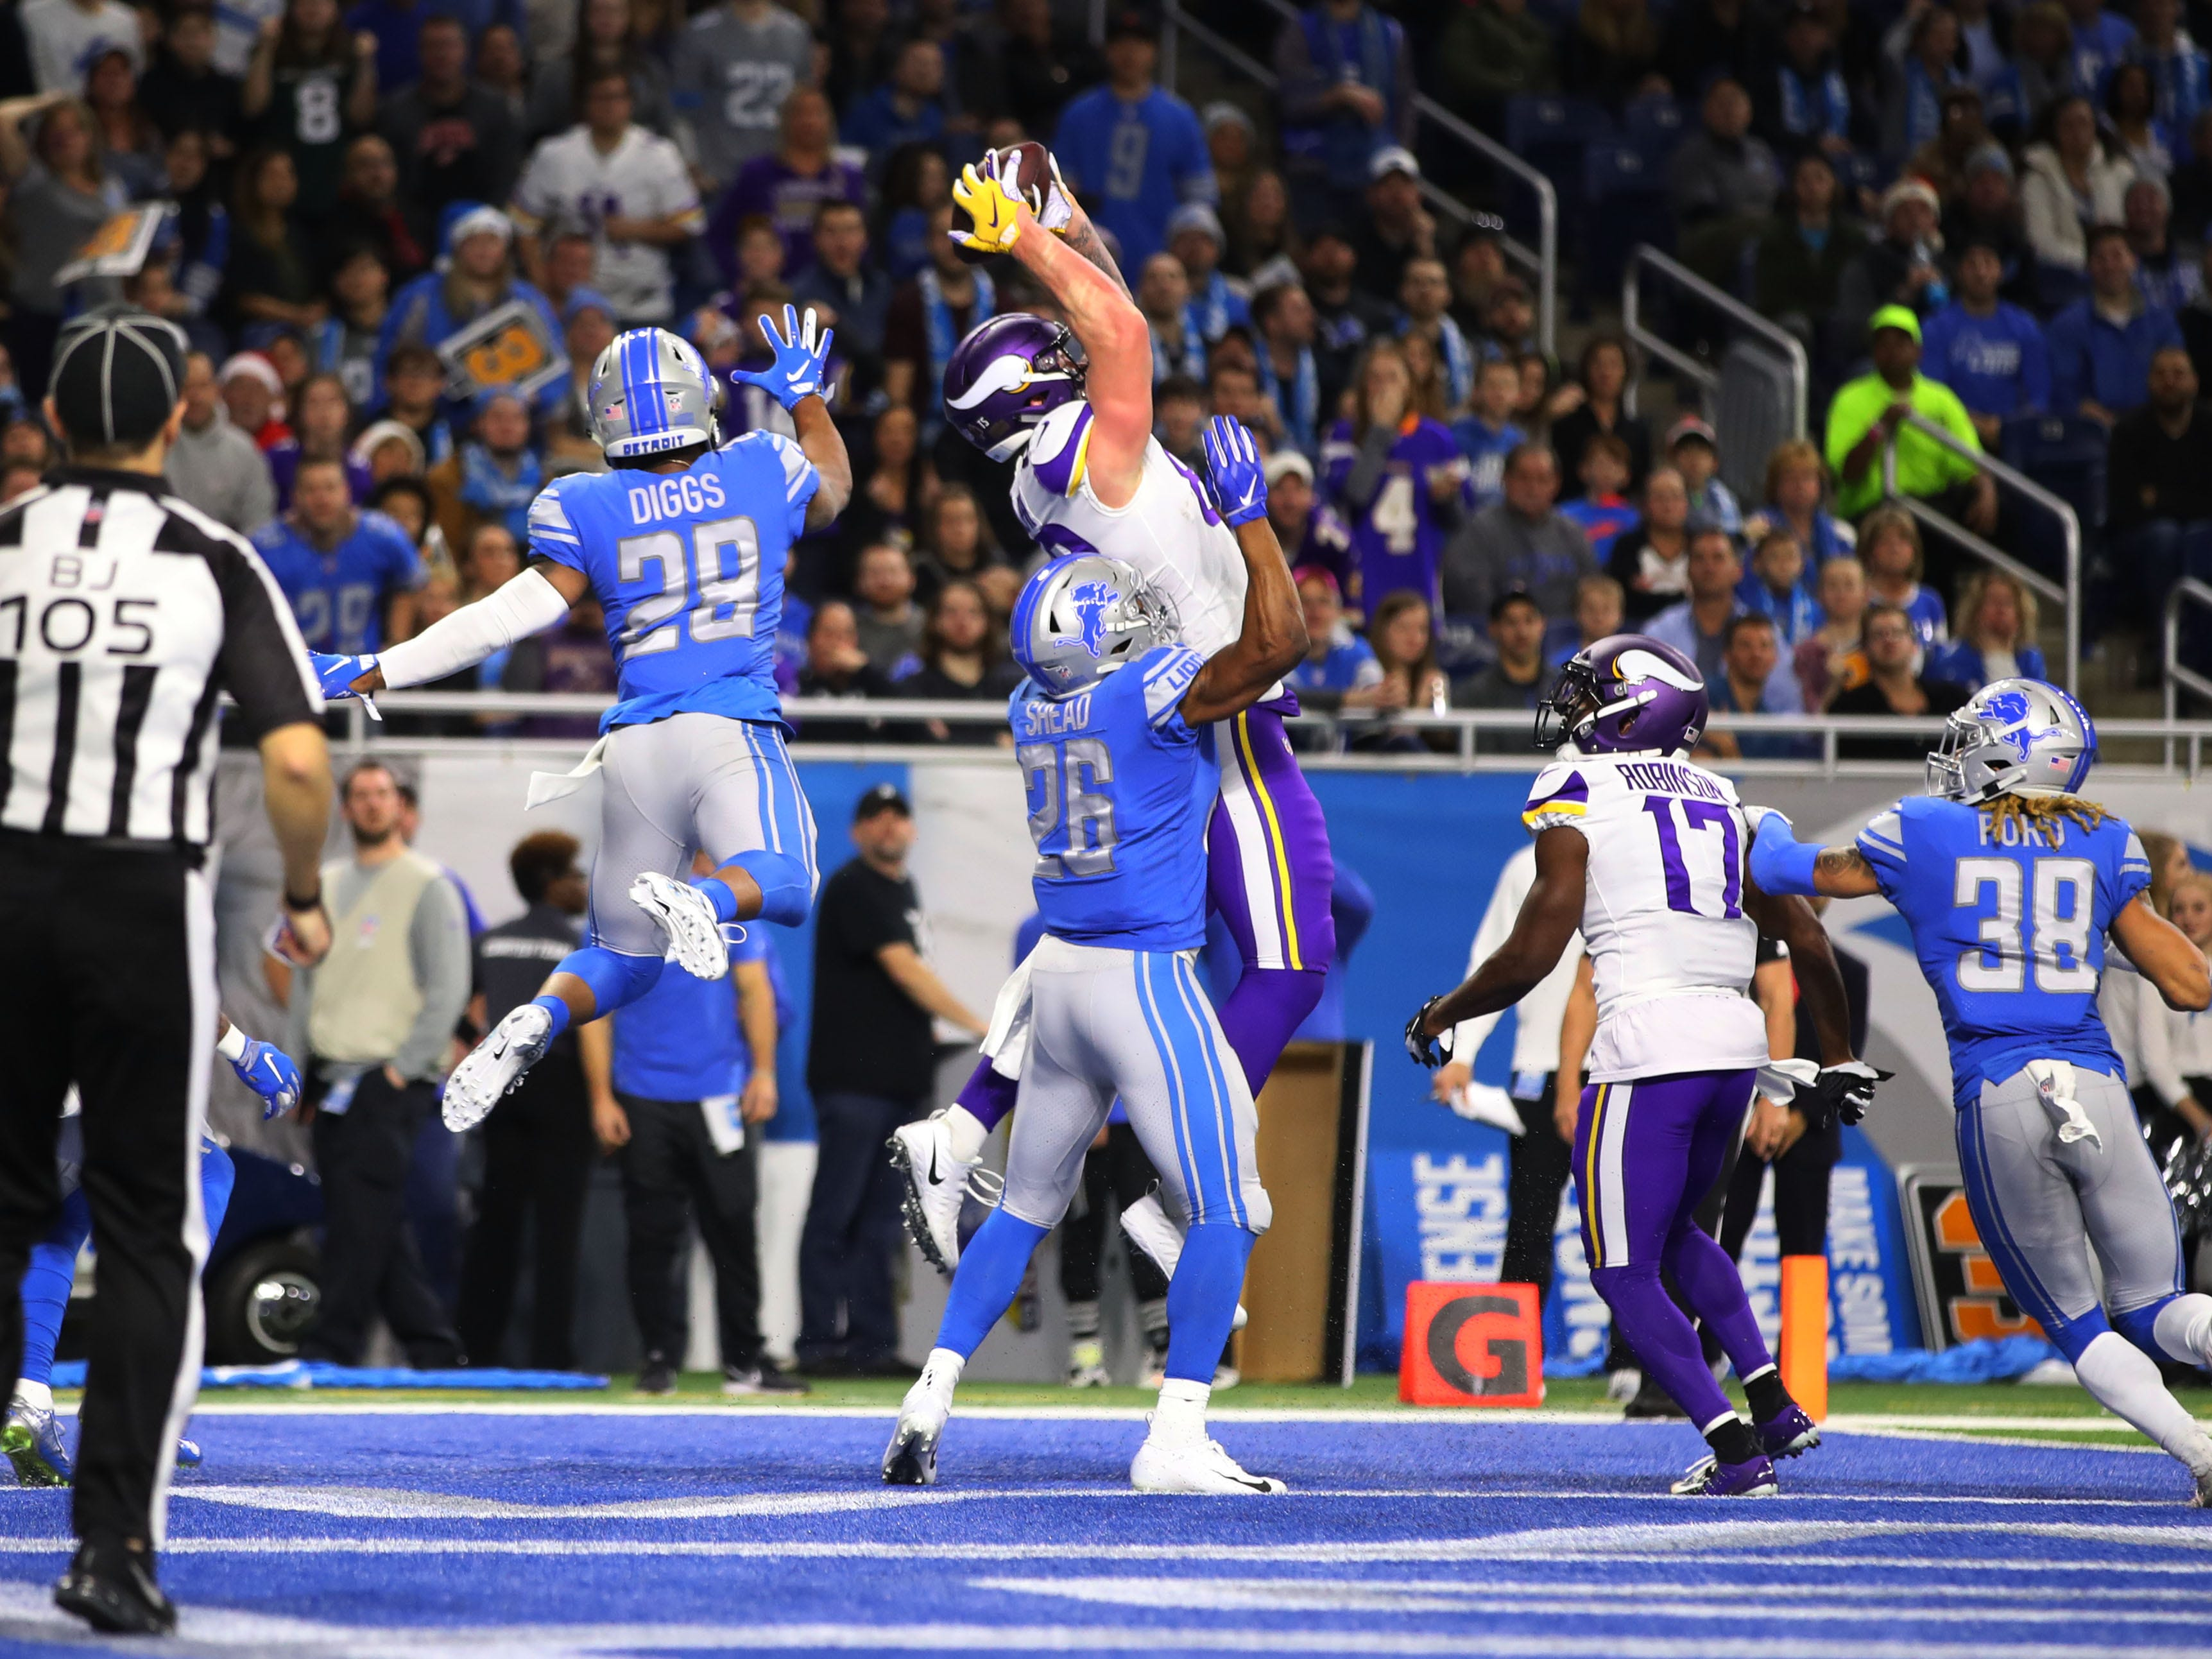 Vikings tight end Kyle Rudolph makes a touchdown catch in the second quarter of the Lions' 27-9 loss on Sunday, Dec. 23, 2018, at Ford Field.